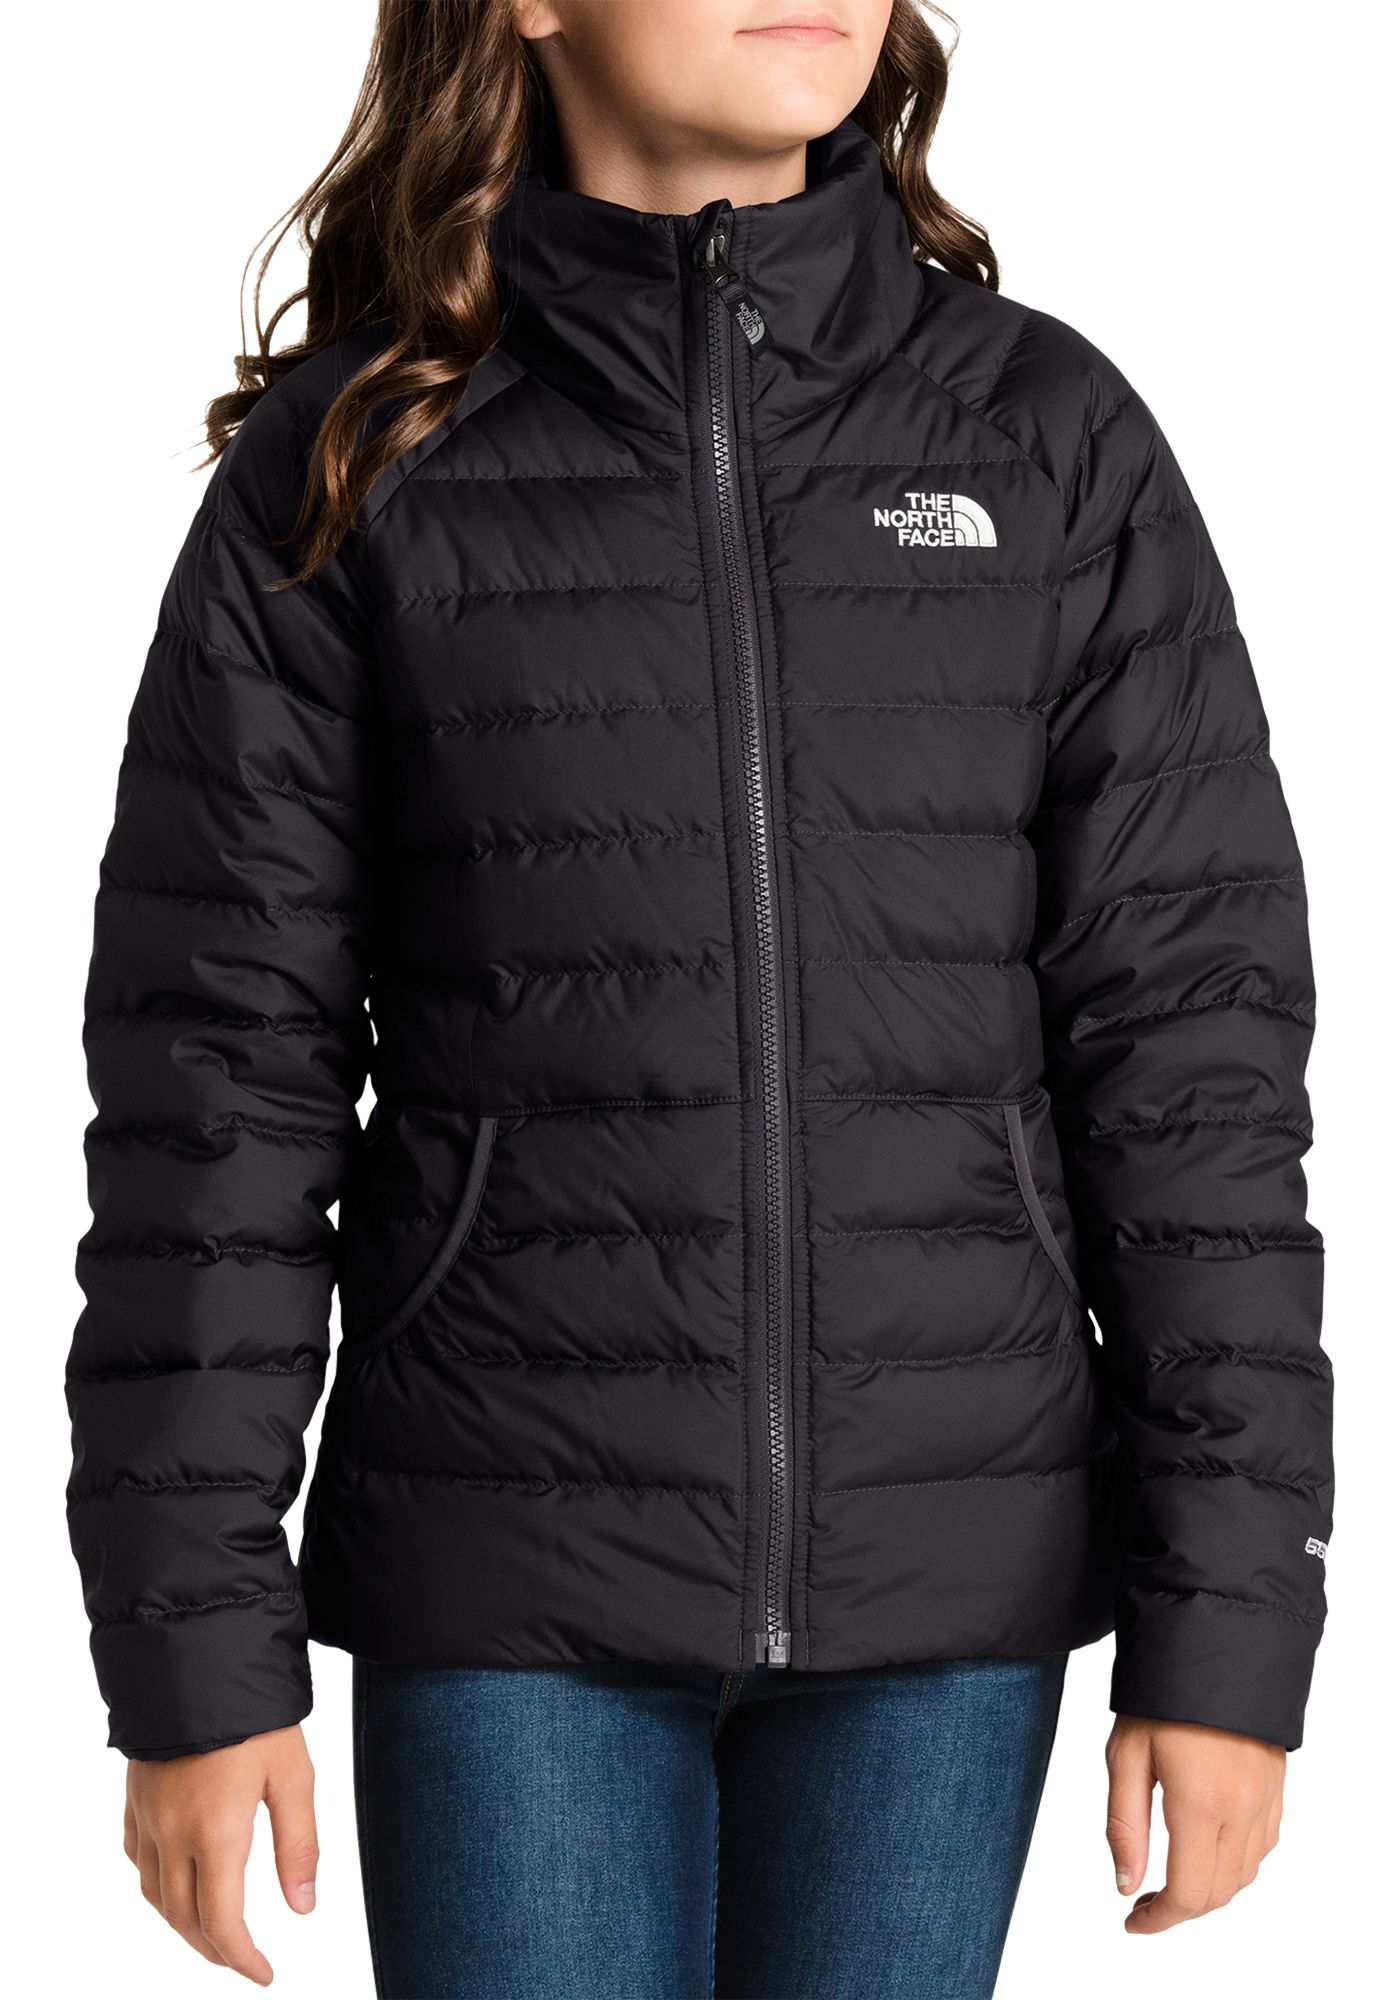 The North Face Girls' Alpz Down Jacket